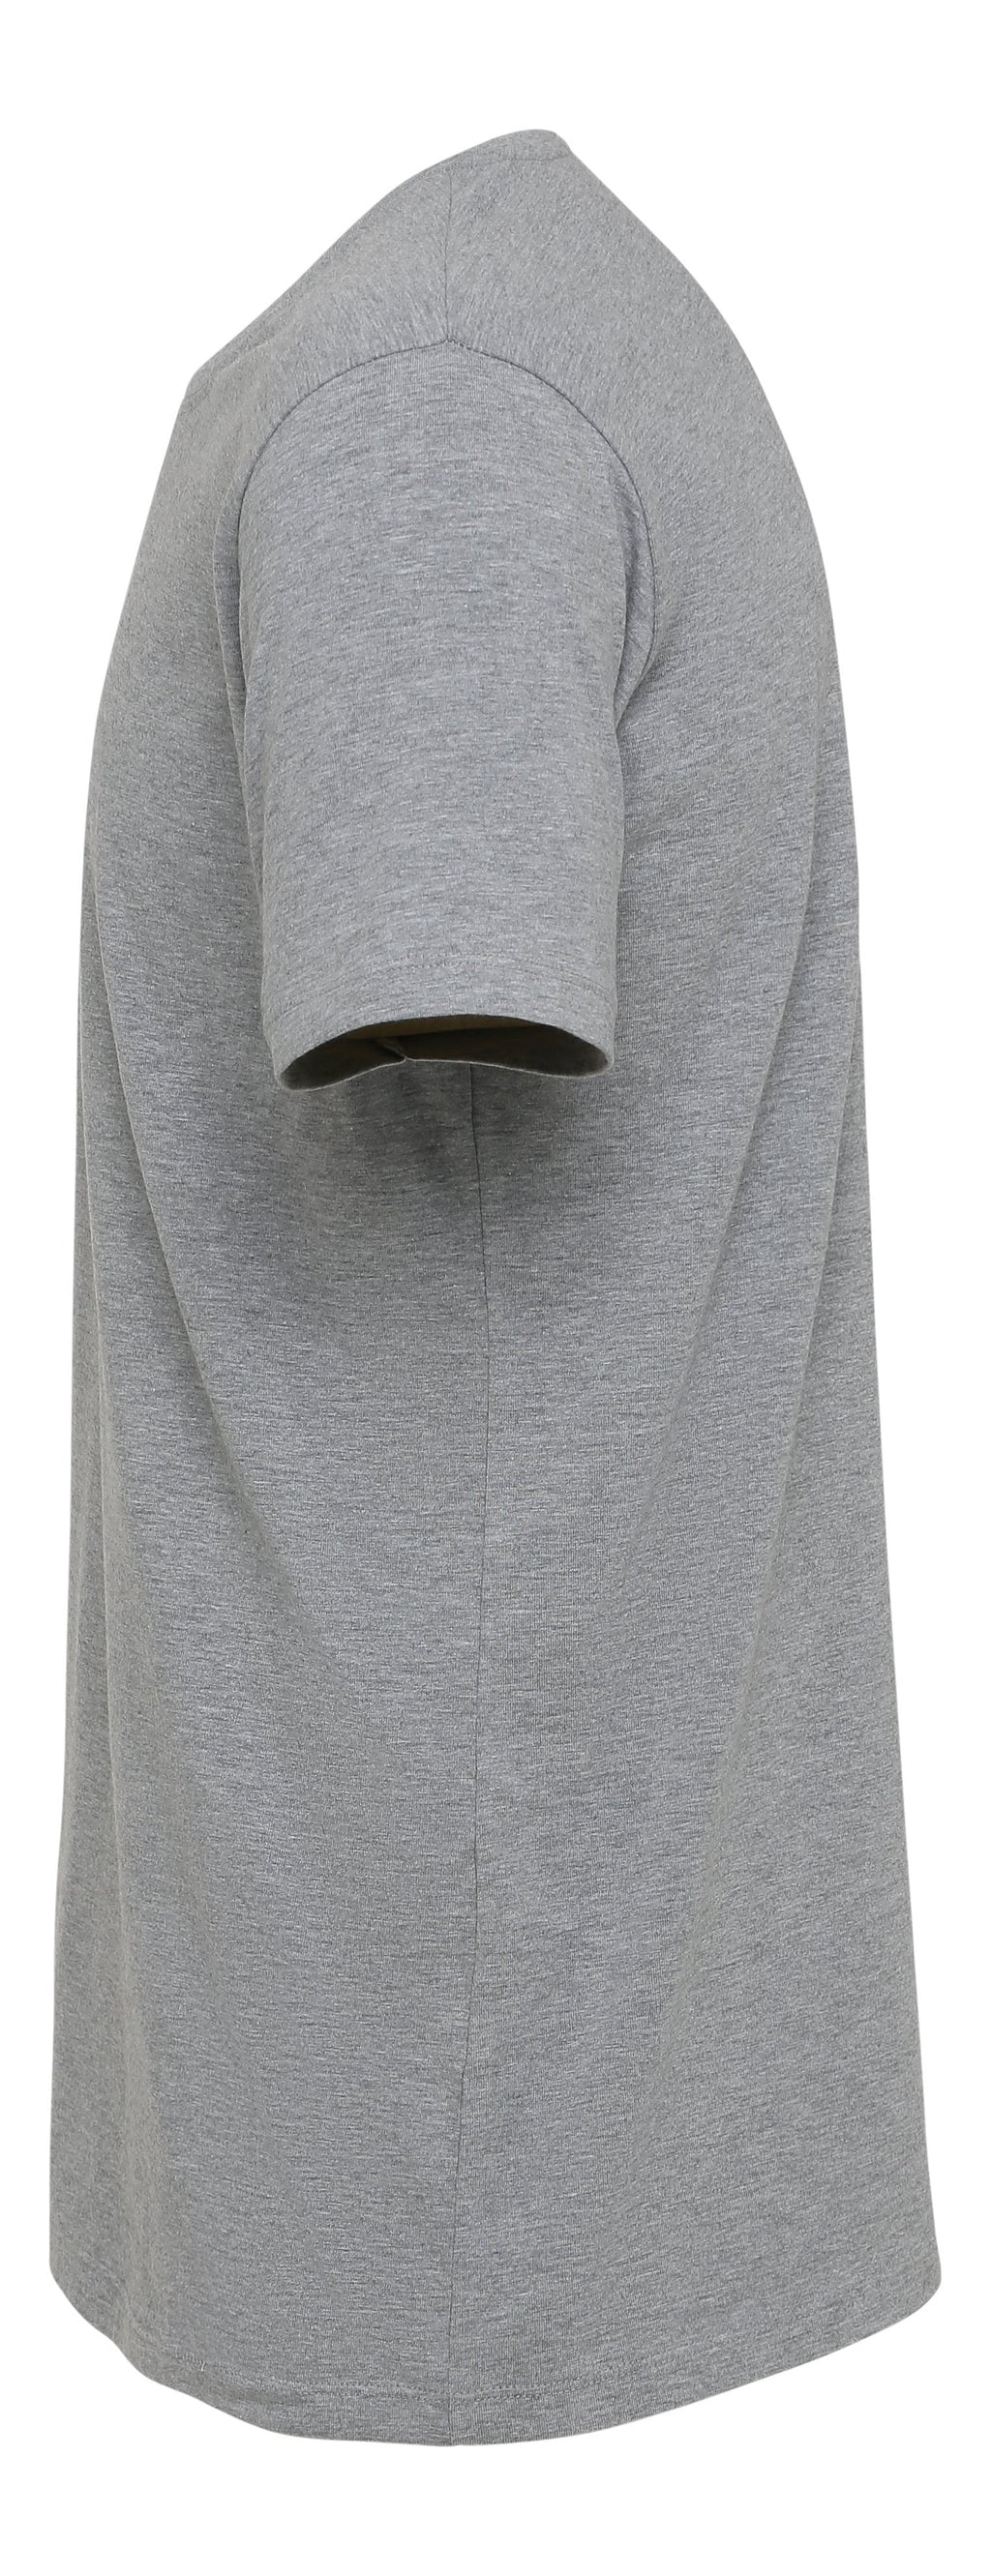 Muscle fit tee - Grey